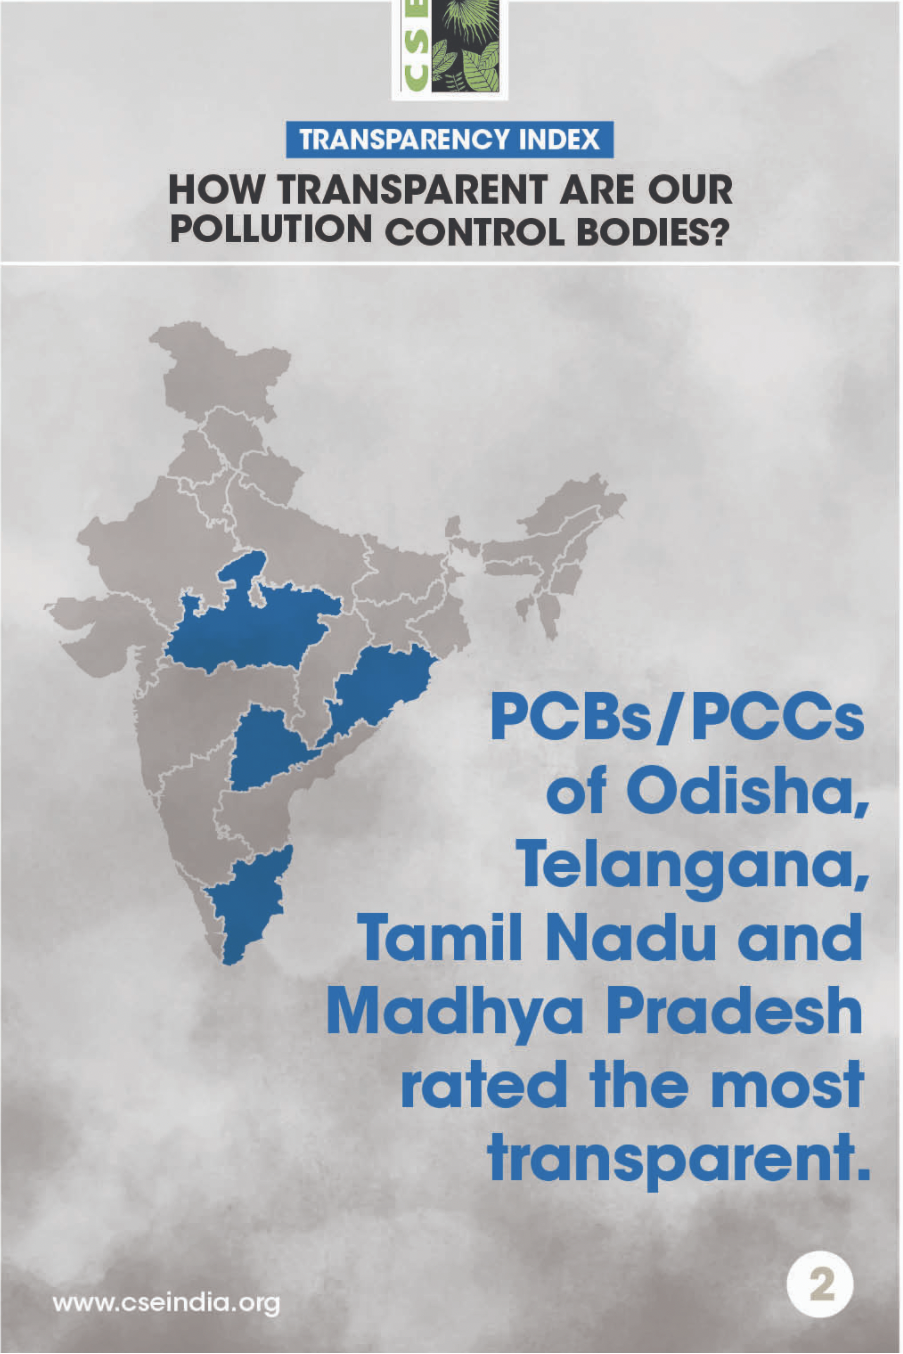 Transparency Index rating for PCBs/PCCs in India